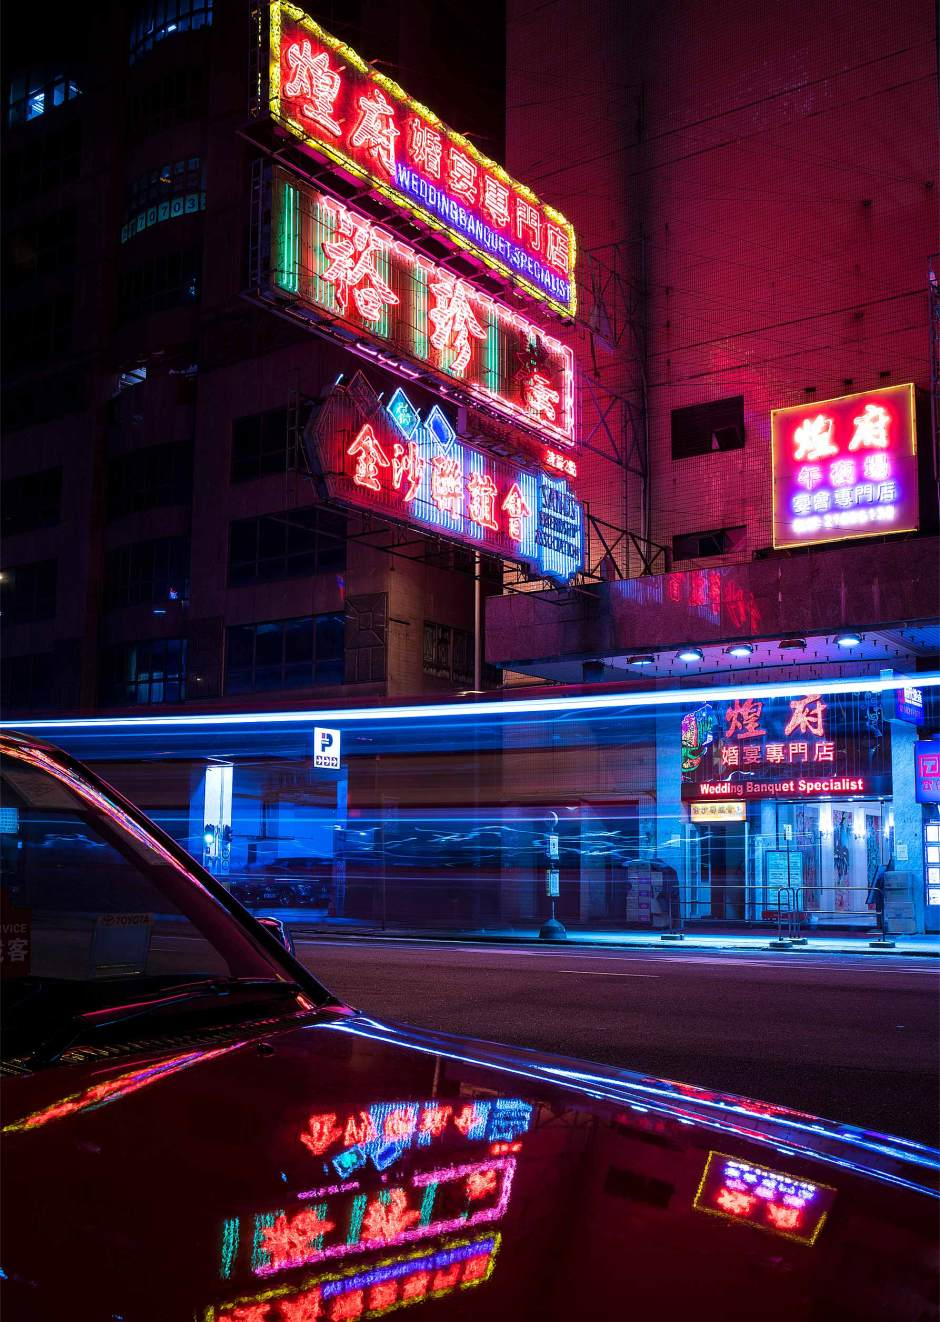 Long exposure night time shot of Hong Kong street